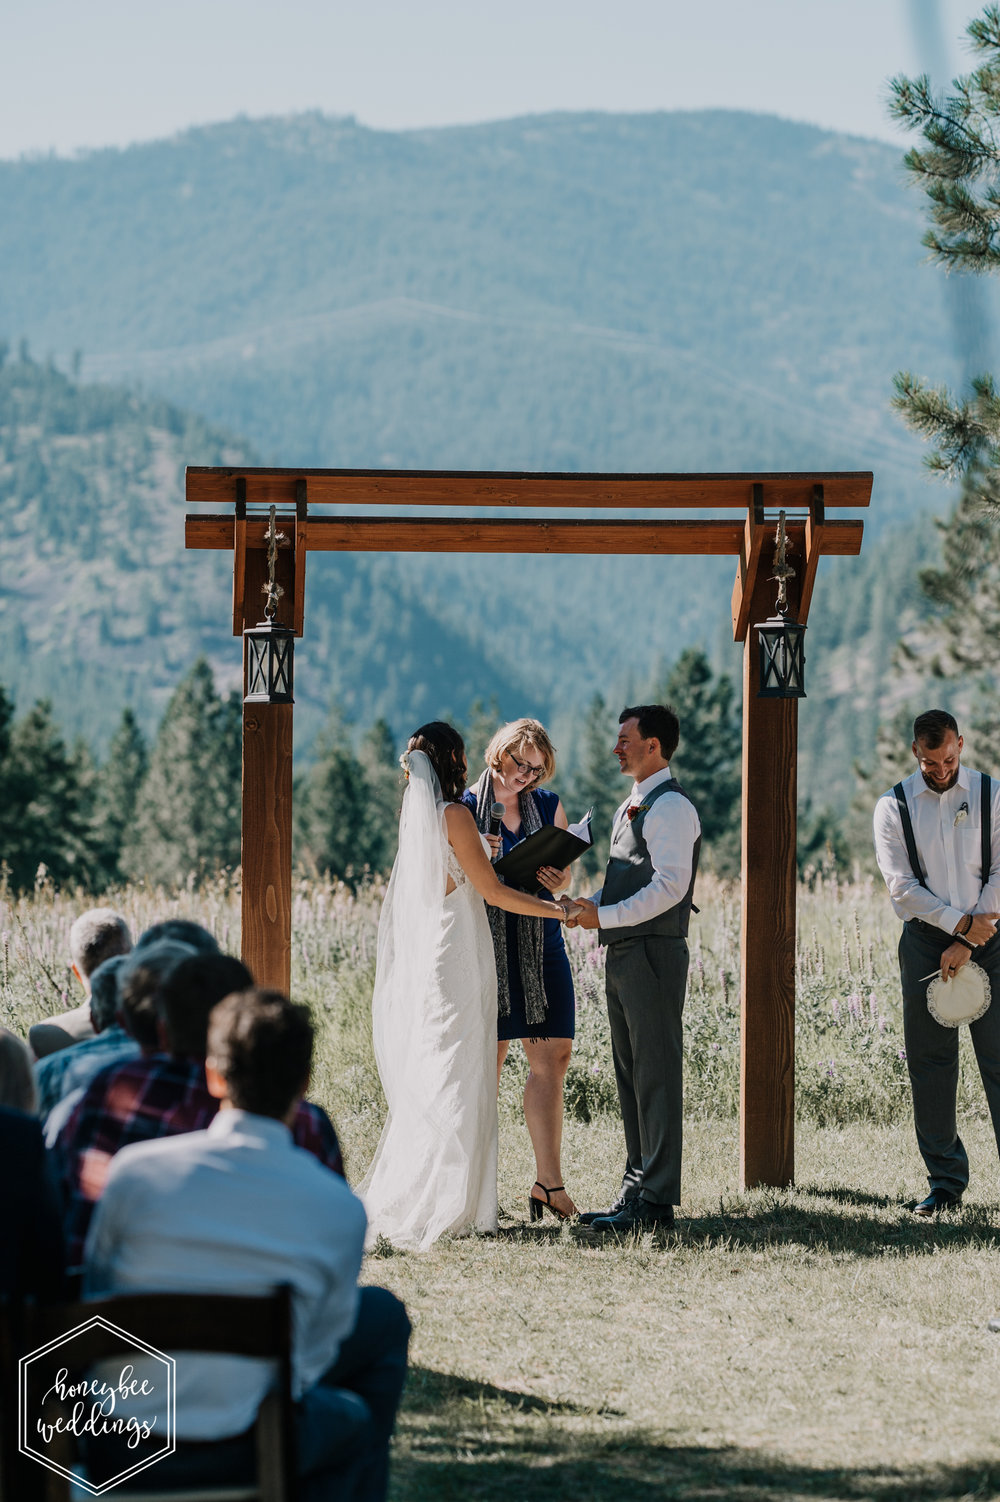 329 White Raven Wedding_Montana Wedding Photographer_Honeybee Weddings_ Meghan Maloney + Arza Hammond 2018-8791.jpg